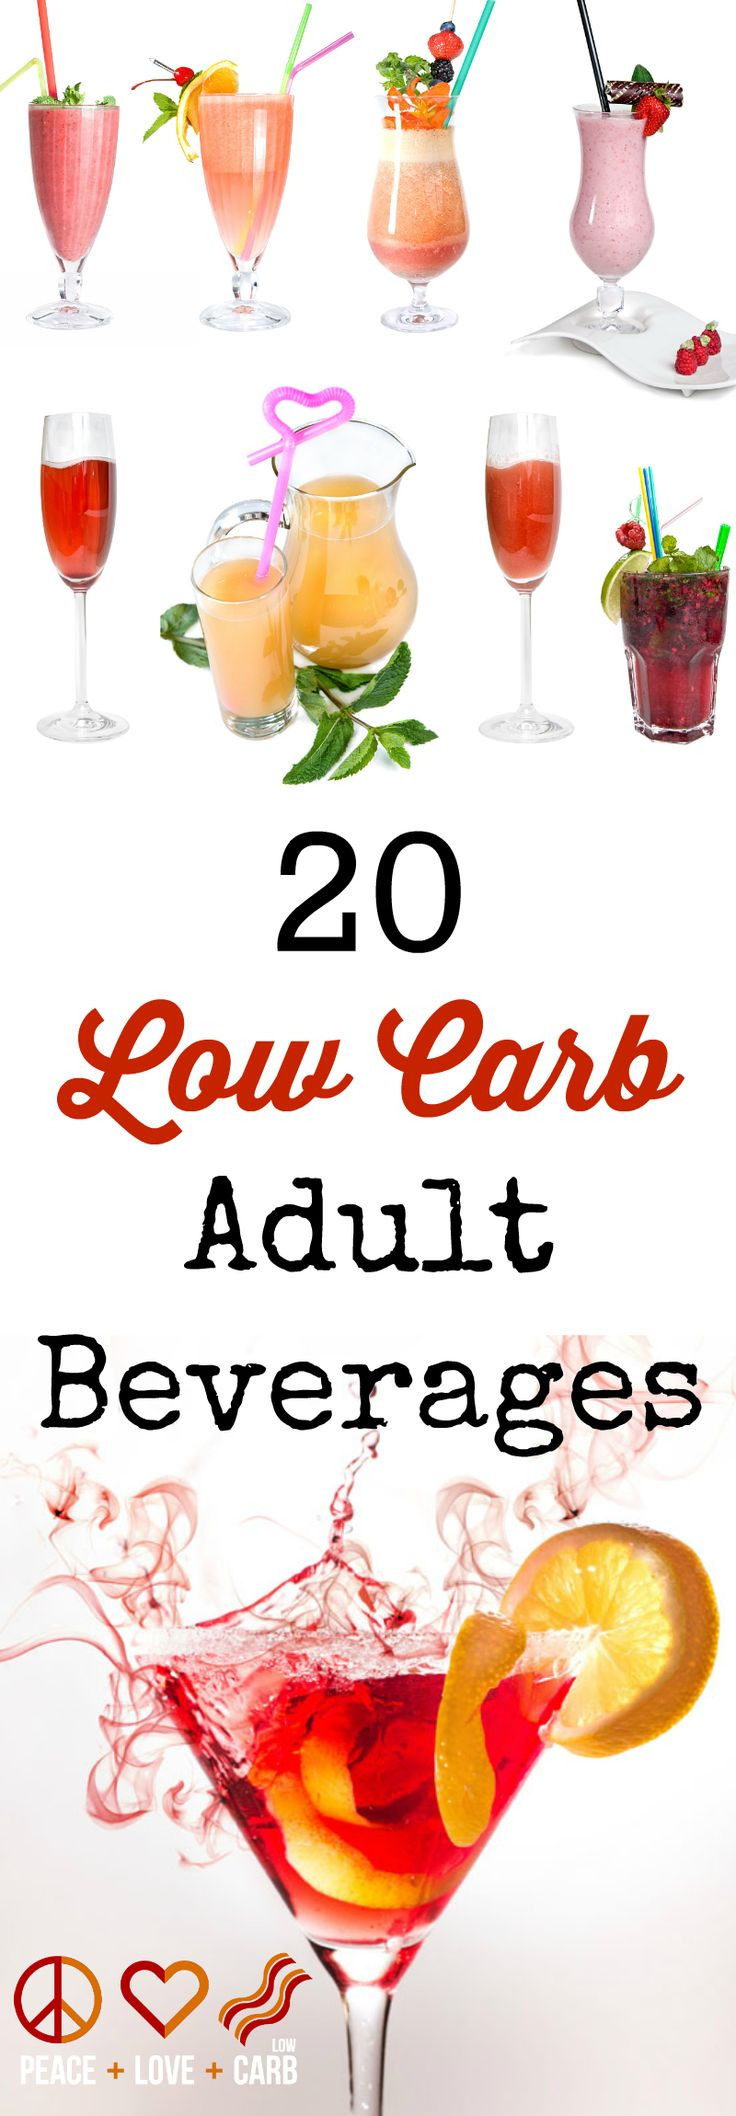 20 Low Carb Adult Beverages | Peace Love and Low Carb